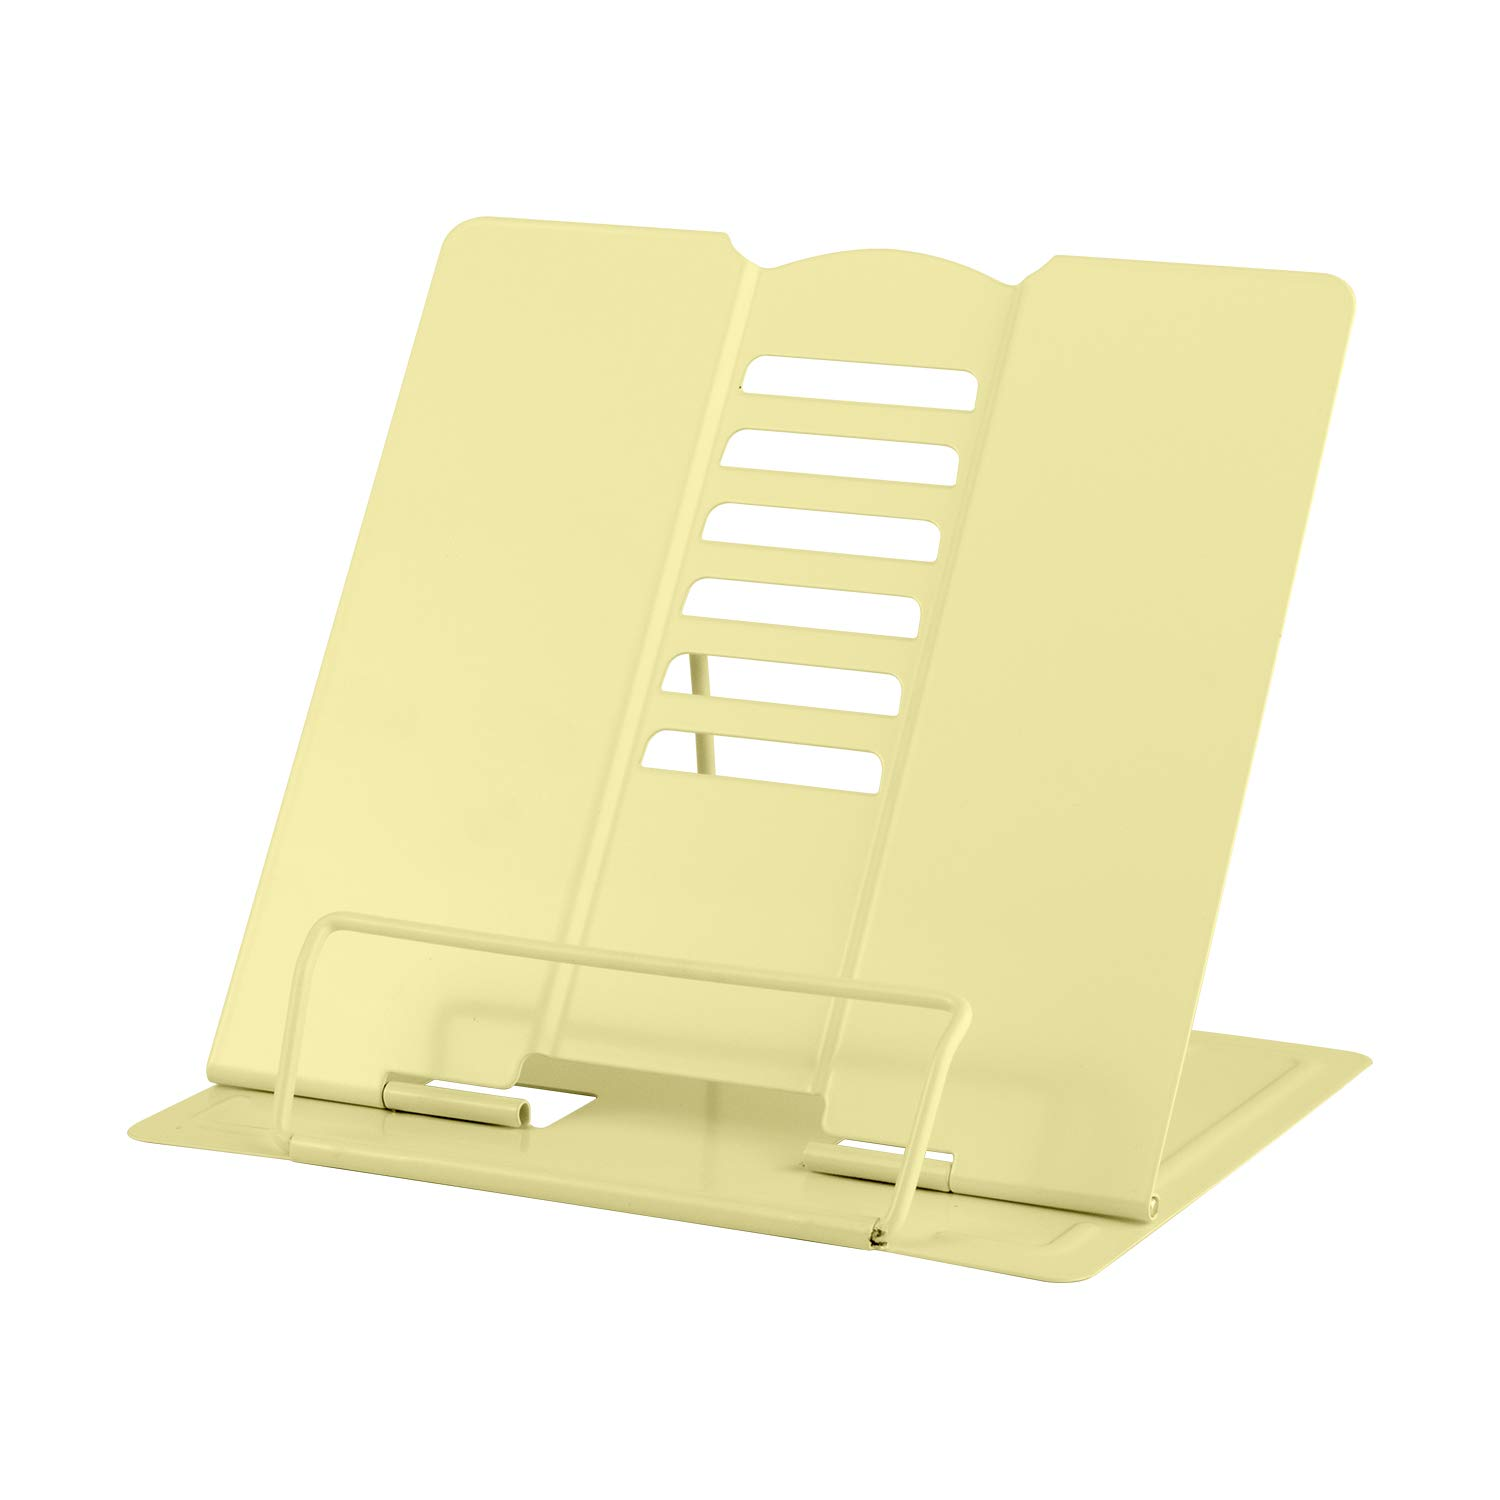 Blizzow Desk Book Stand Holders for Reading Hands Free, Durable Metal Adjustable Book Stand, Sturdy Lightweight Foldable Portable Bookstand -Cookbook, Recipe, Tablet, Music Book, Documents (Beige)